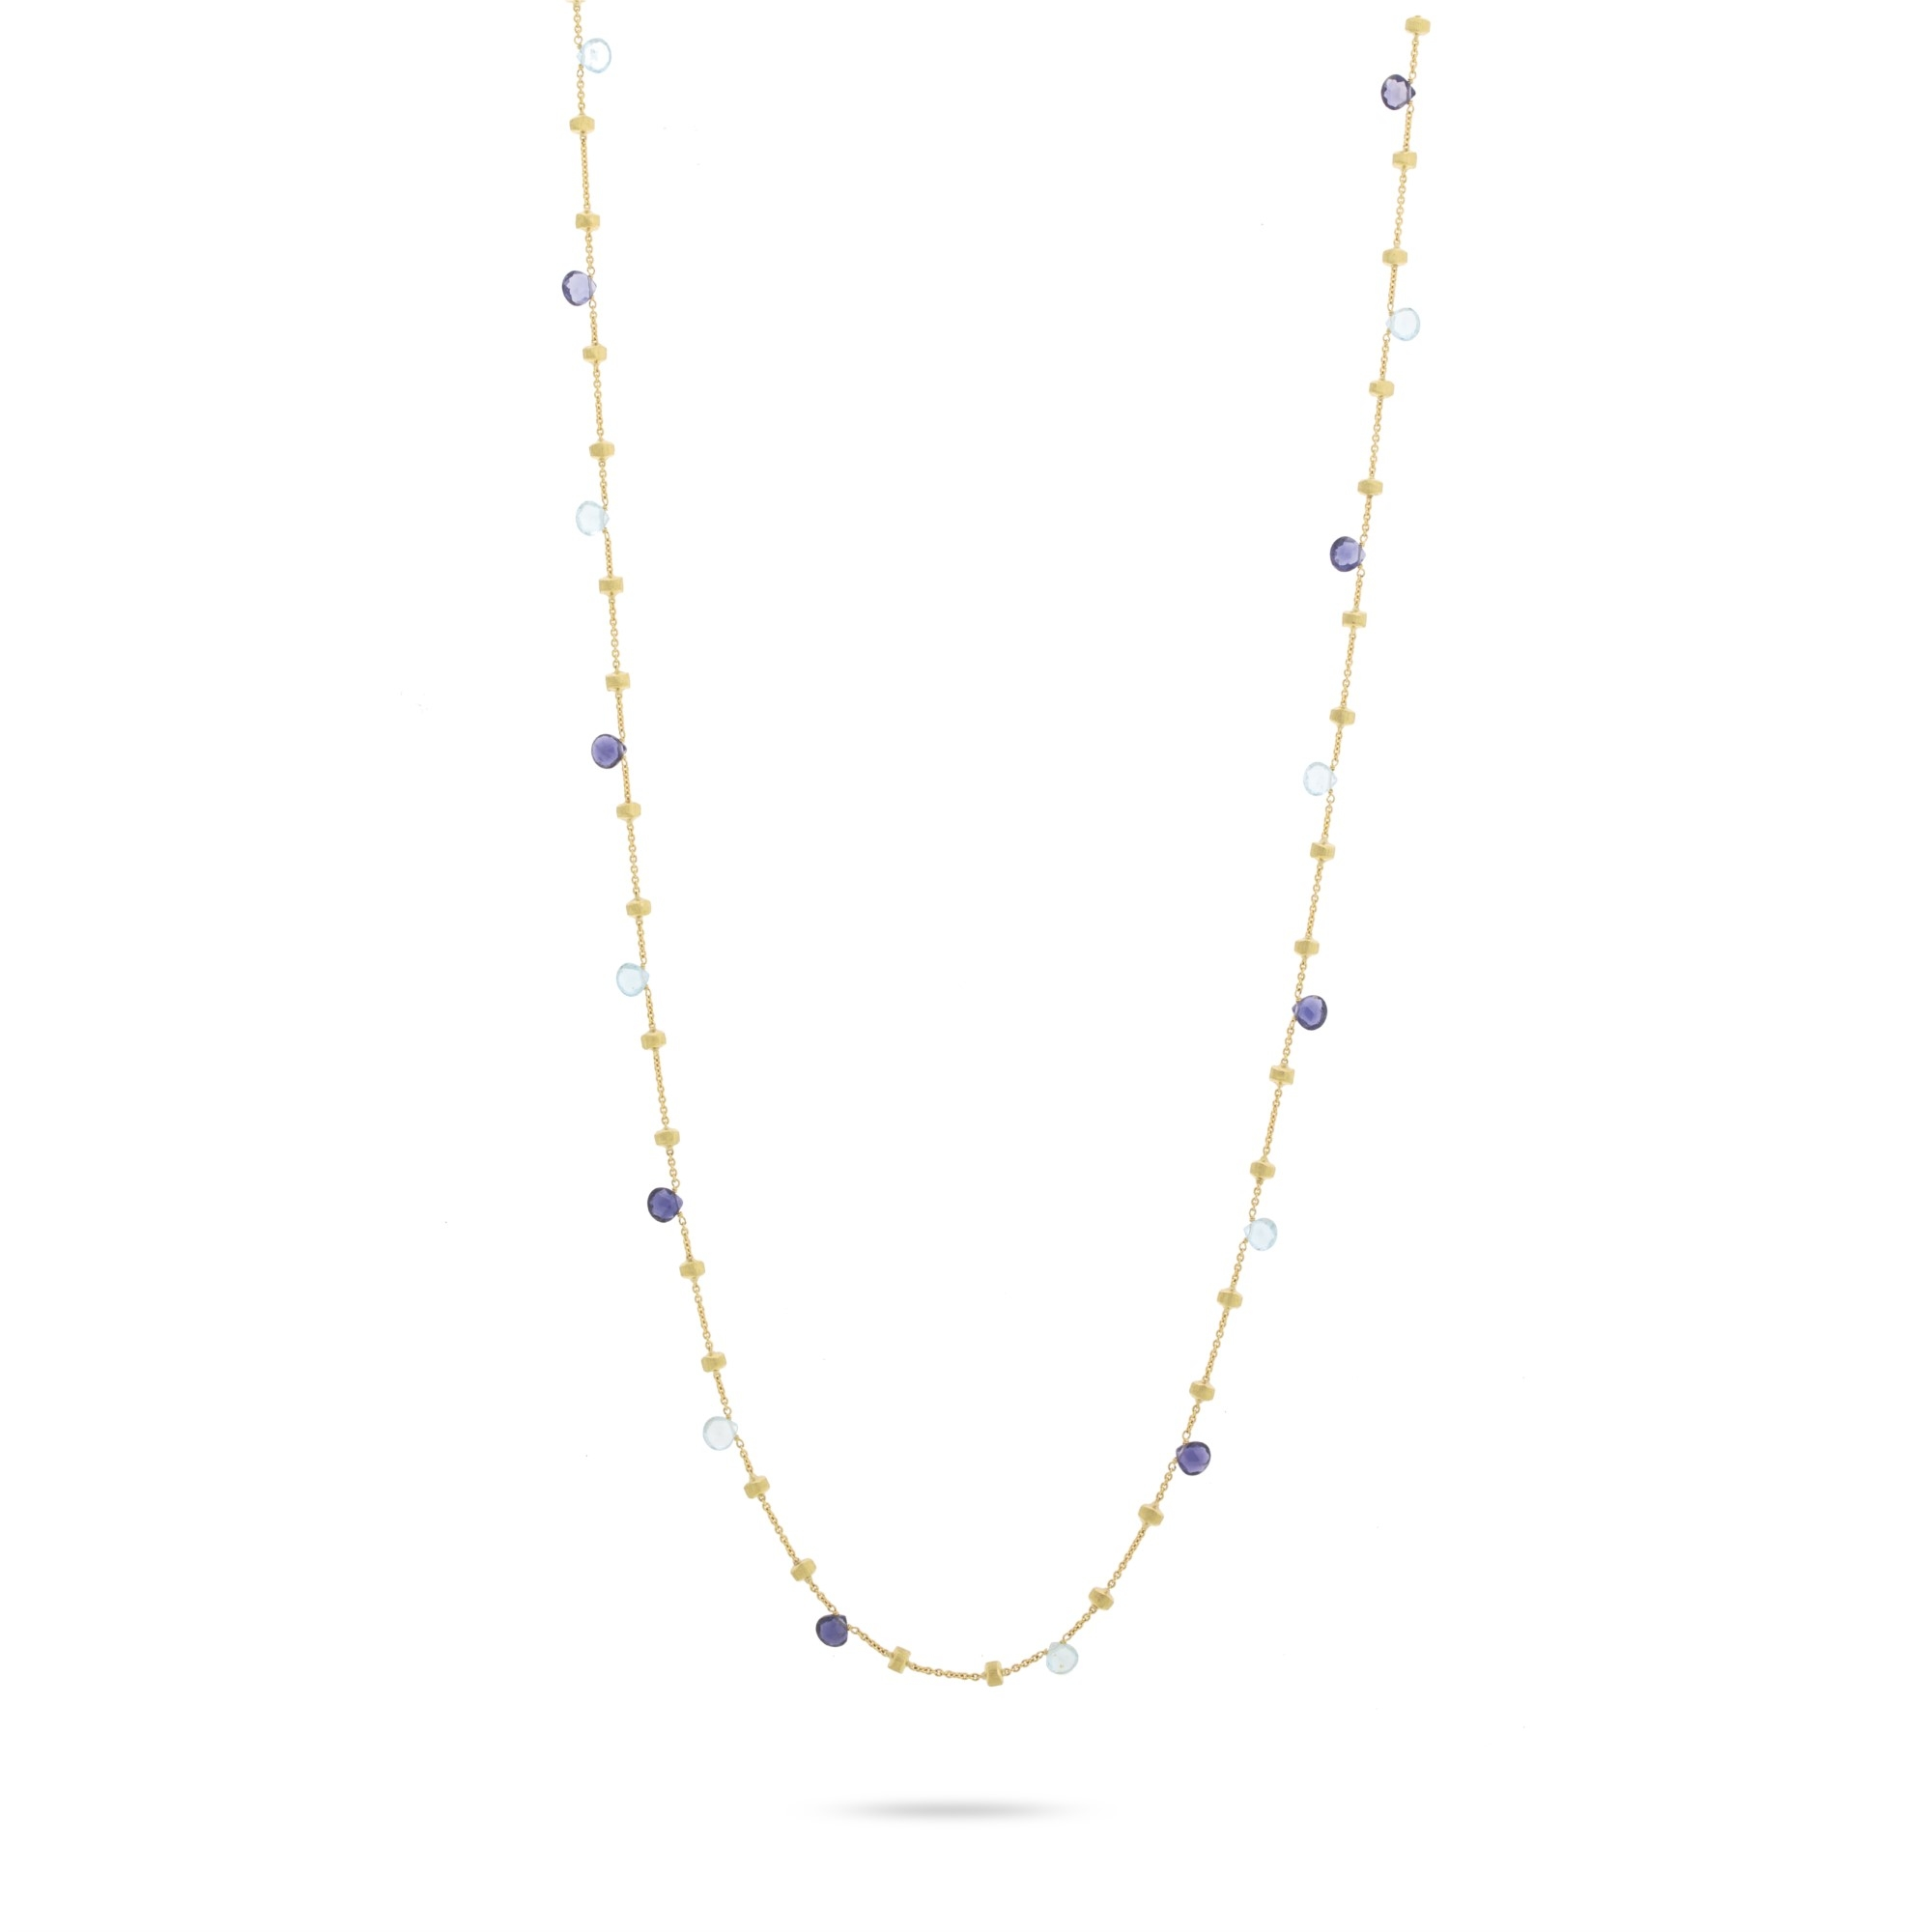 Marco Bicego 18K Yellow Gold  Blue Topaz Gold Necklace with Stones CB1199 MIX240 Y